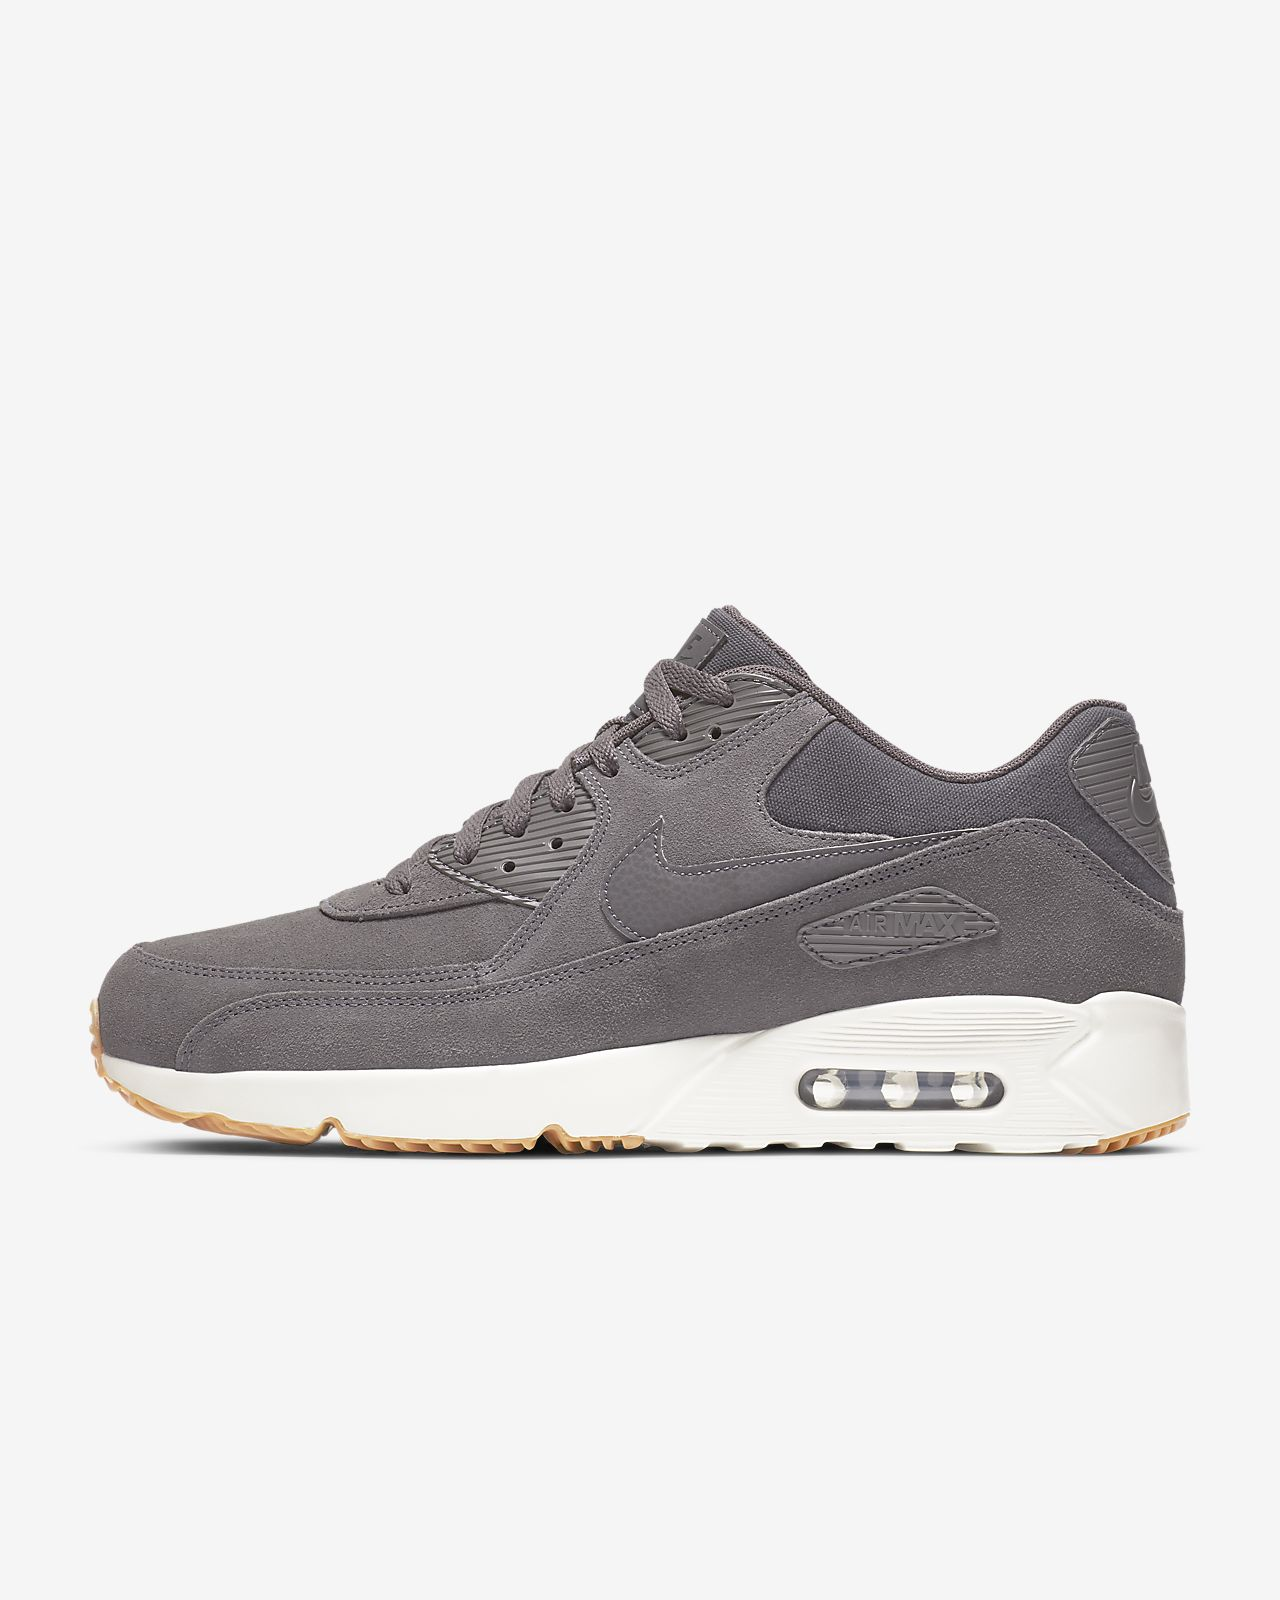 54b7fb0756c7 Nike Air Max 90 Ultra 2.0 Men s Shoe. Nike.com GB